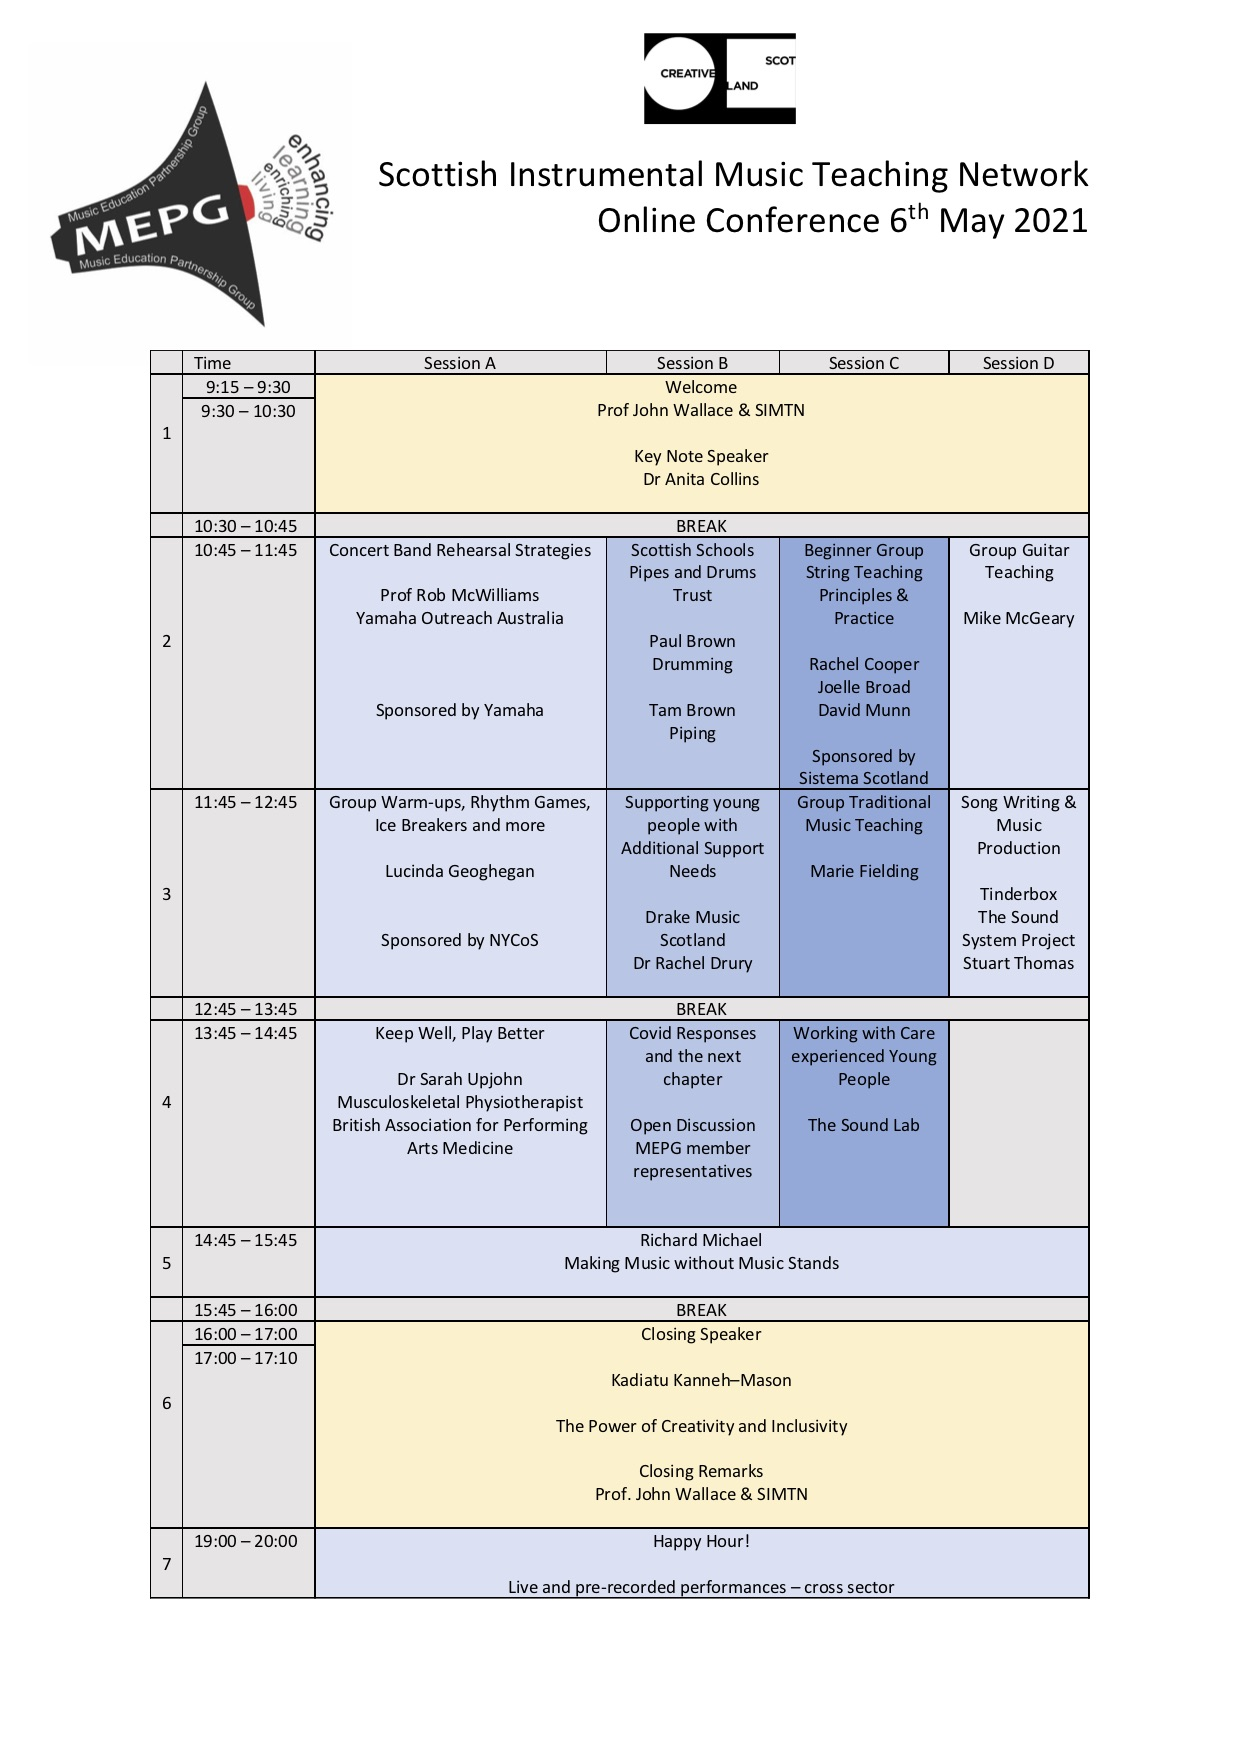 SIMTN Conference Schedule